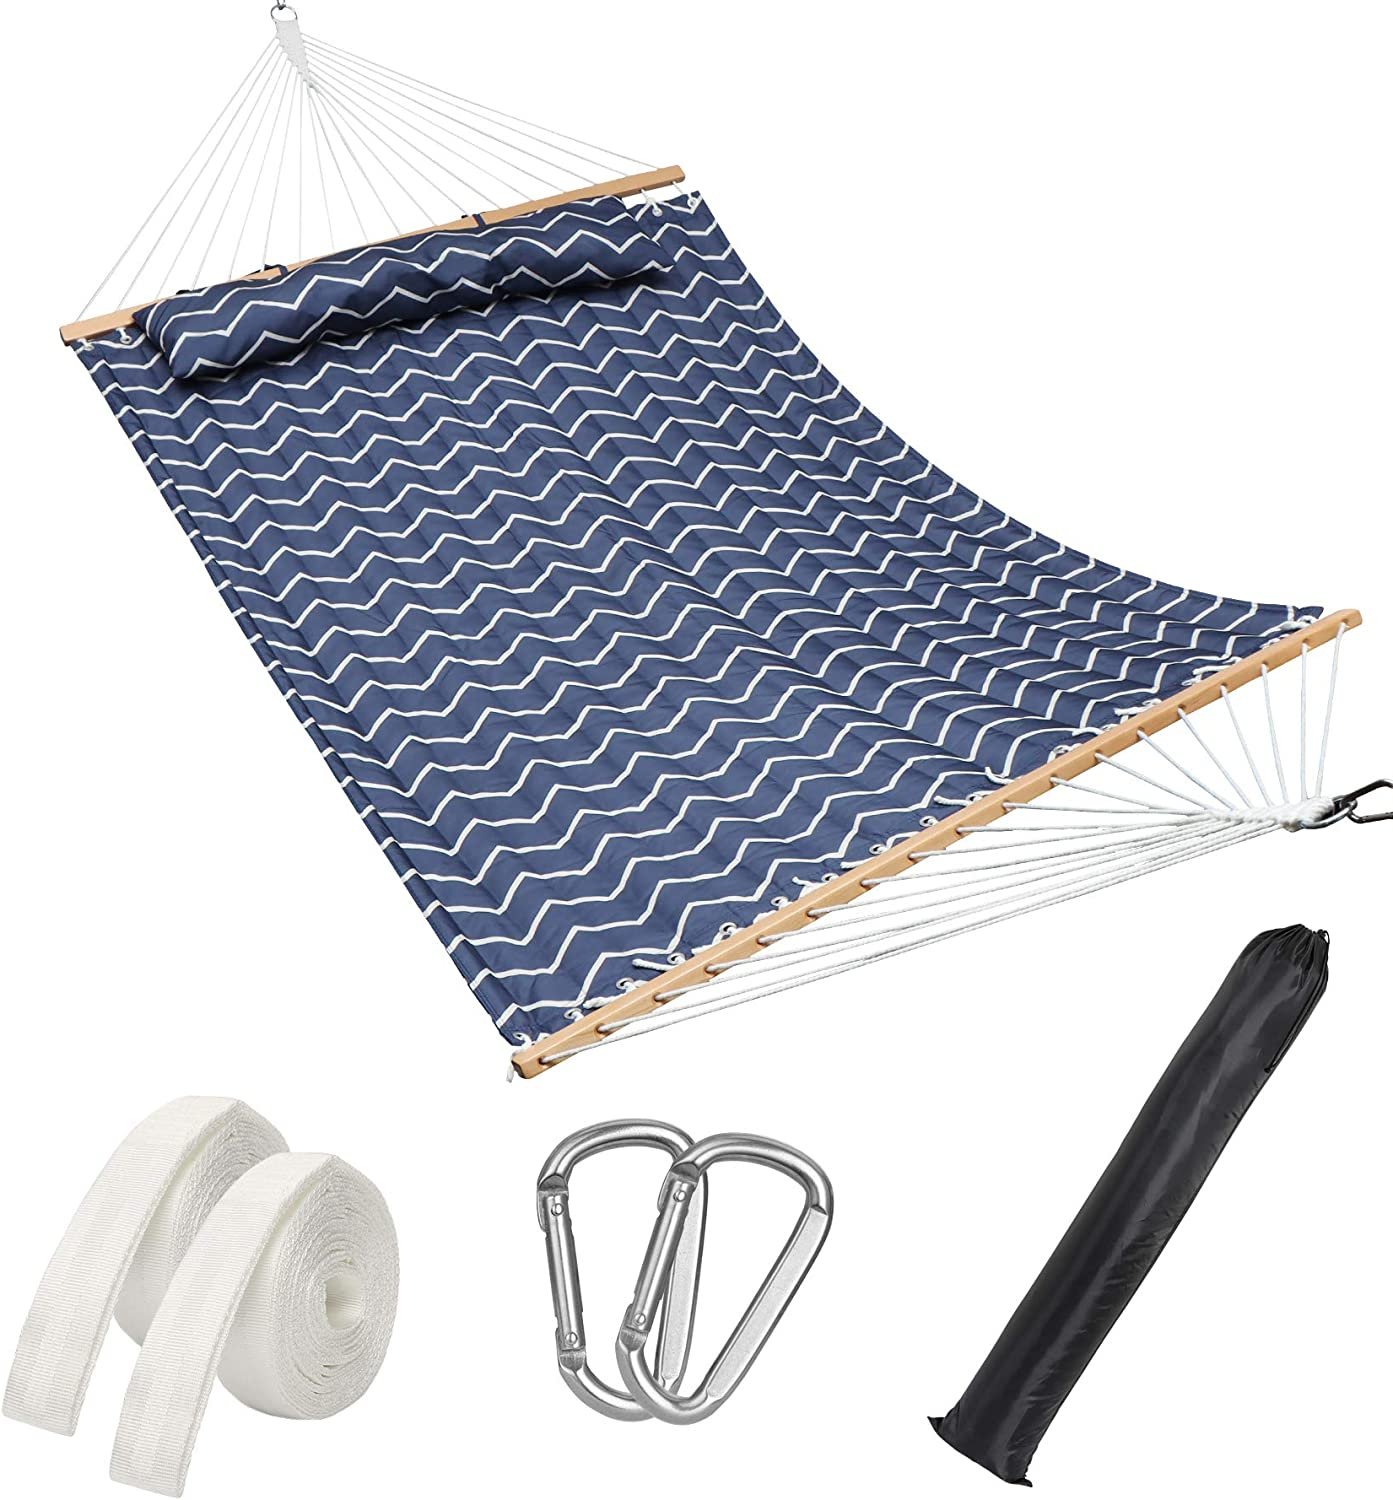 D G SIMOS Double Quilted 2 Person Hammock Swing, Detachable Pillow, 2 Adjustable Tree Straps, 2 Carabiners, Carry Bag. Heavy Duty 450 Lbs Capacity Perfect for Home, Bedroom & Travel - Navy Chevron